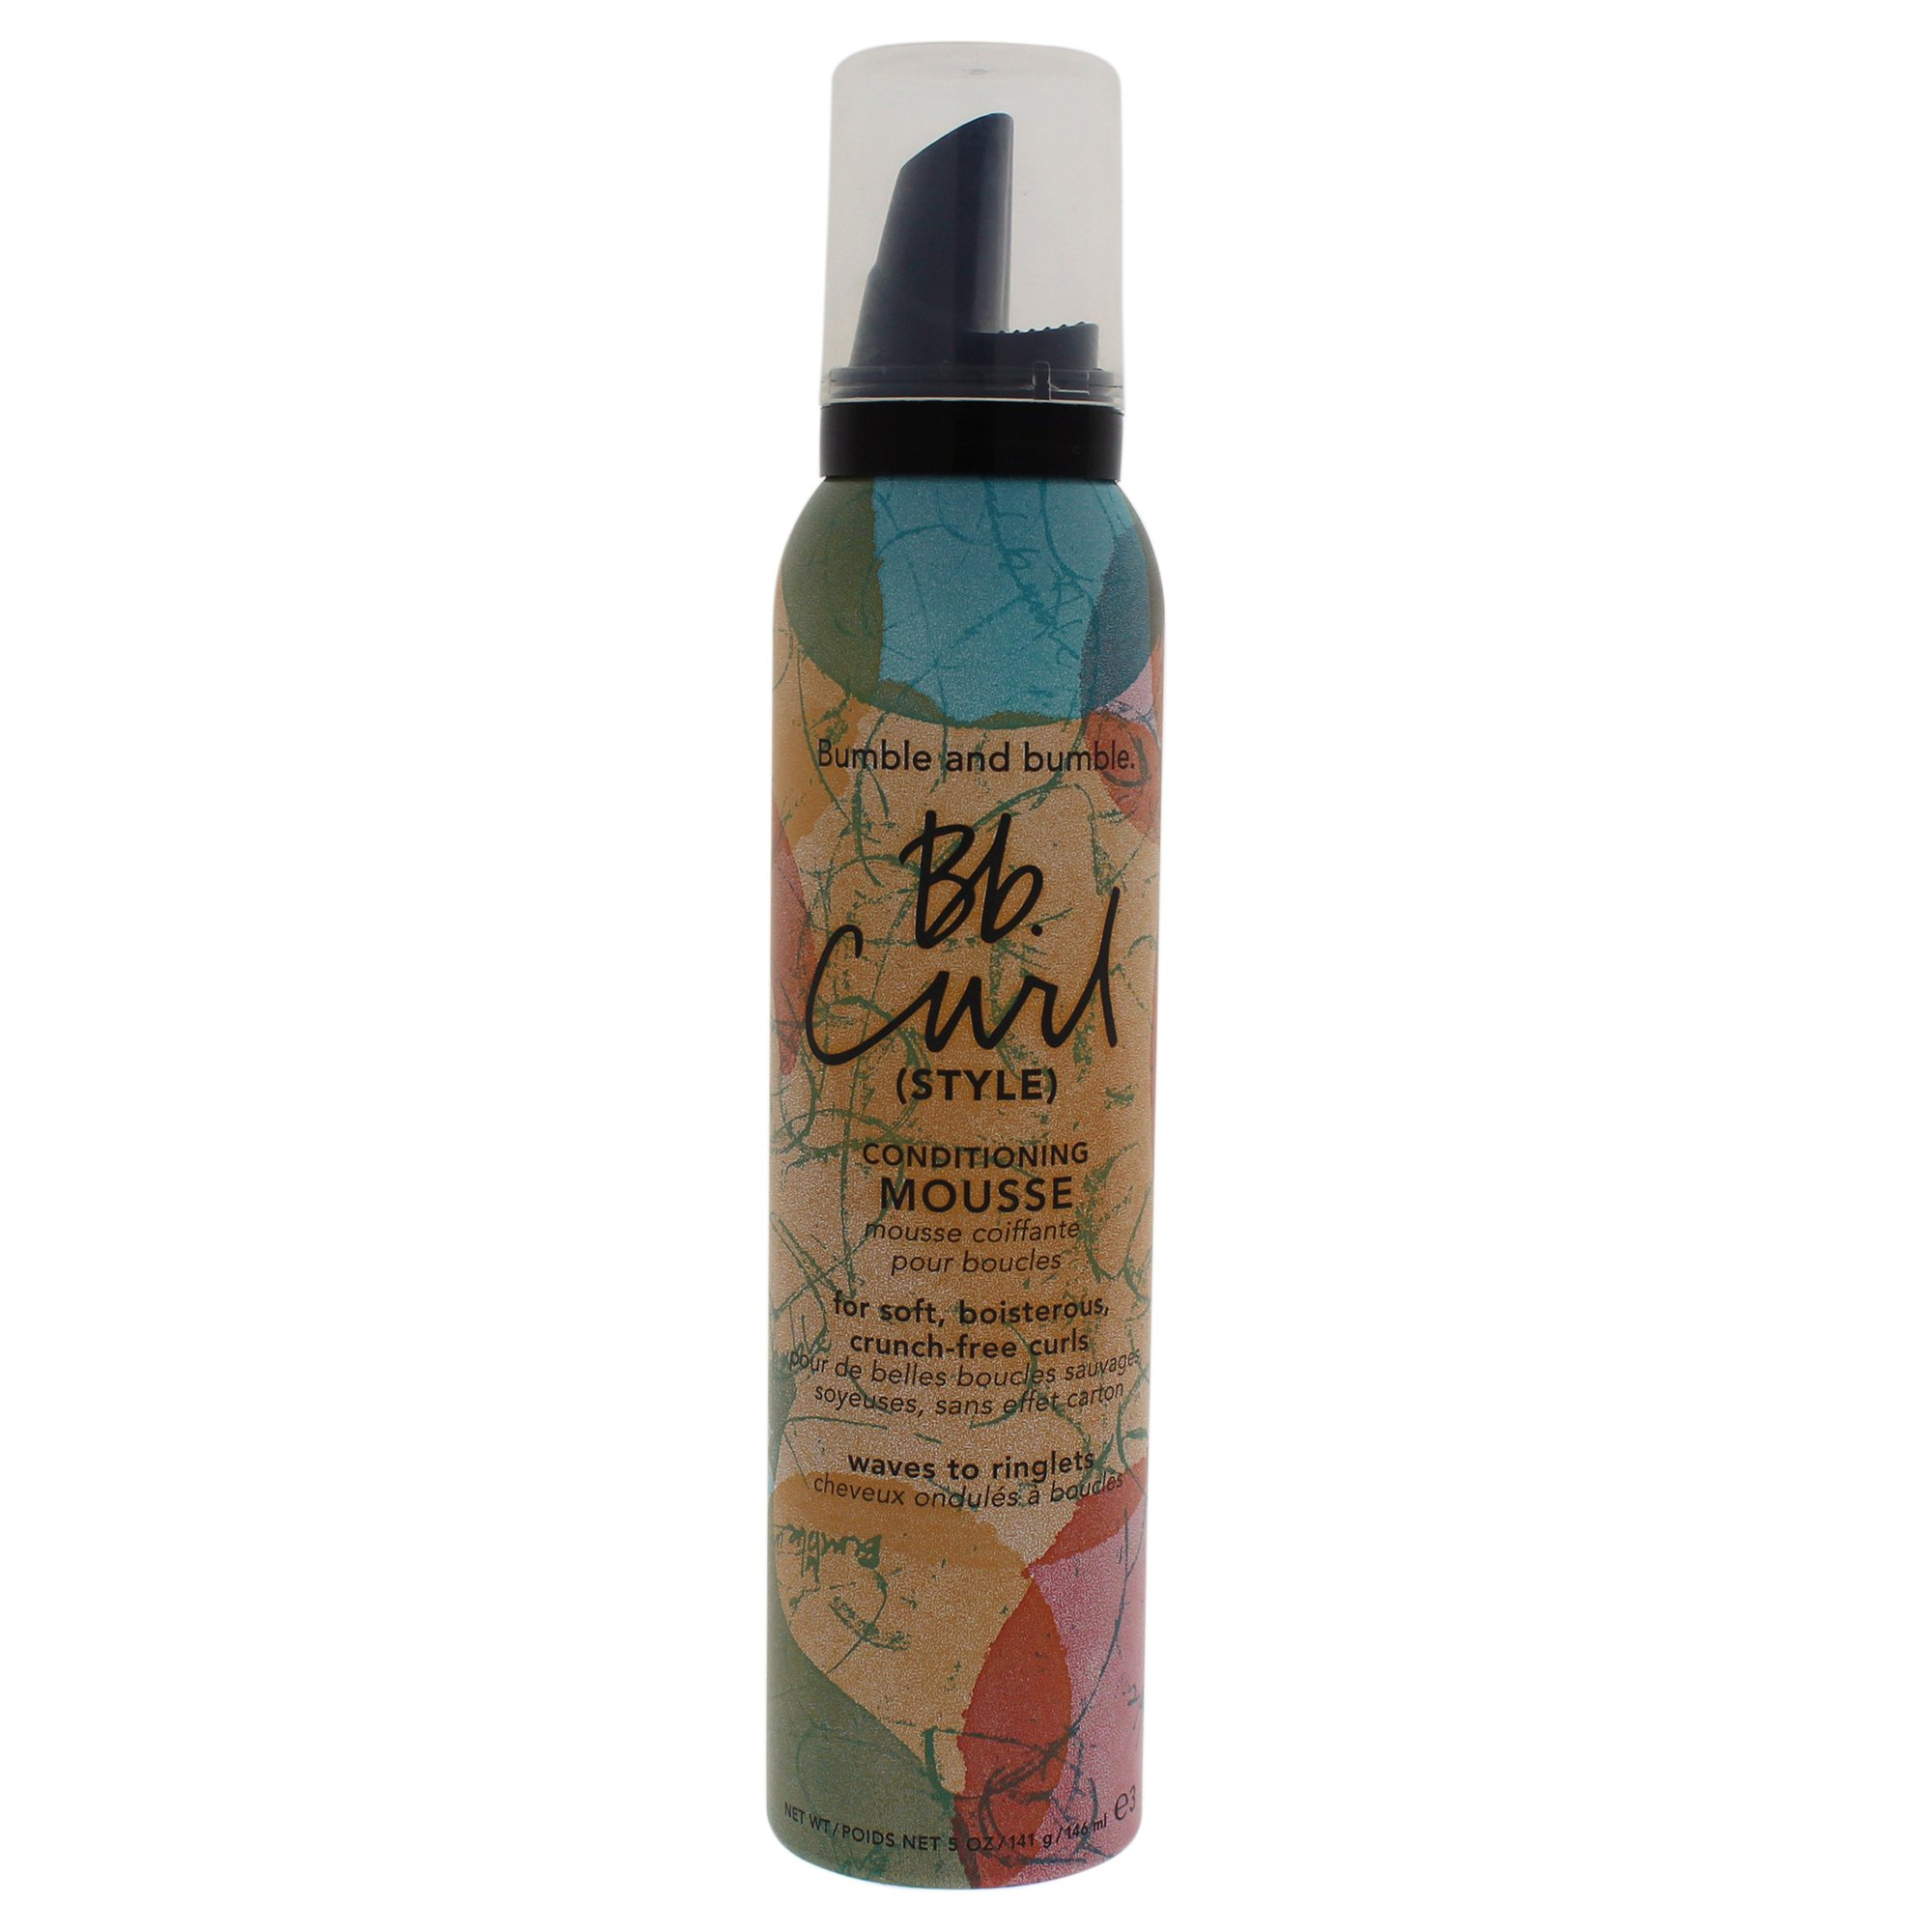 Bumble and Bumble Curl Style Conditioning Mousse 5 oz by Bumble and Bumble